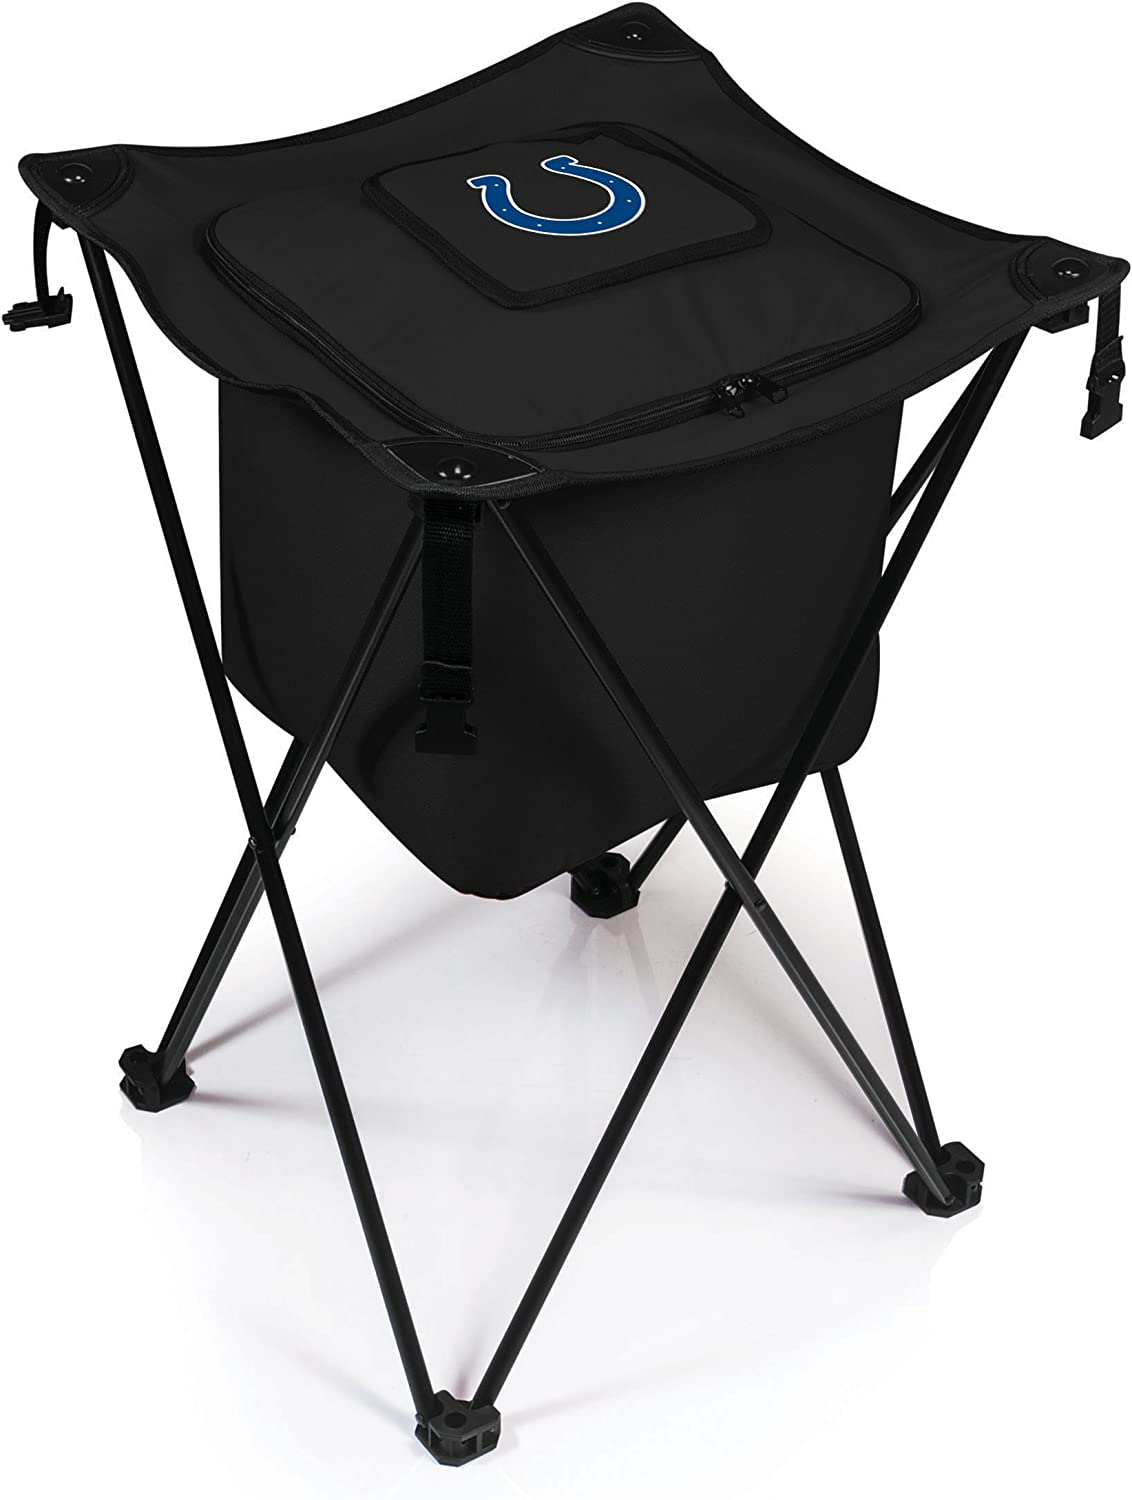 NFL Sidekick Insulated Portable Cooler with Integrated Legs